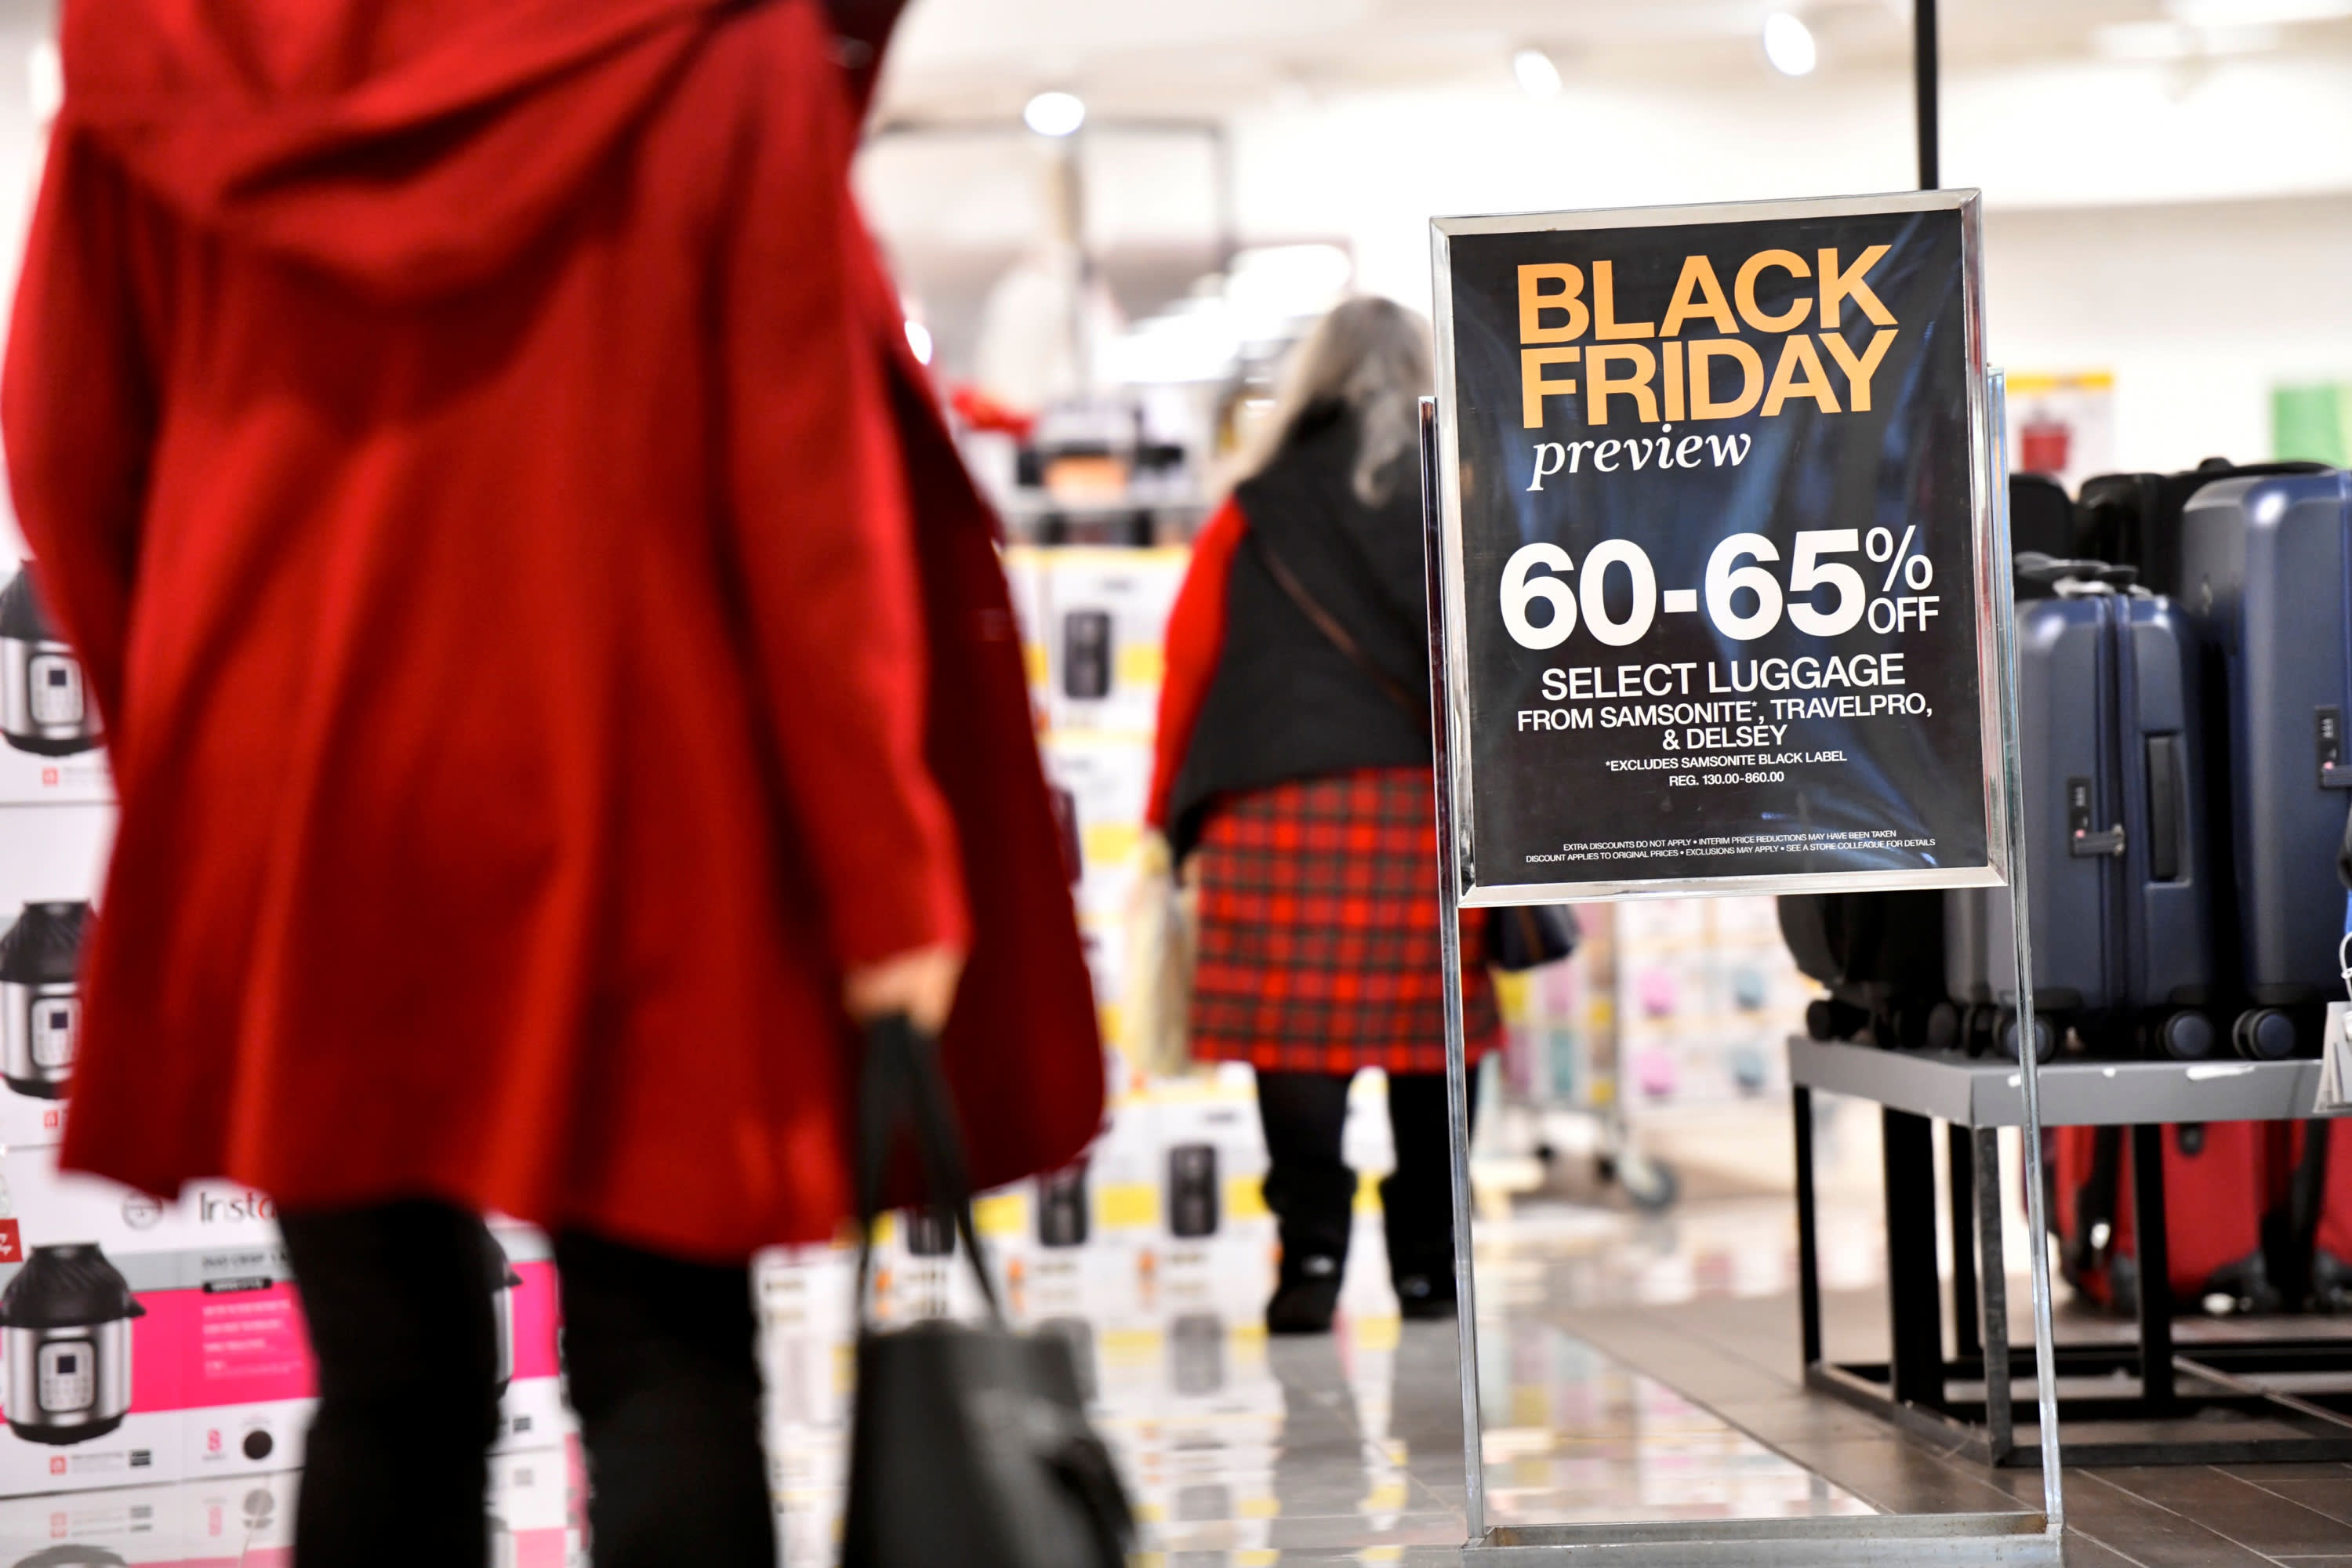 Black Friday is losing its clout, more bad news for